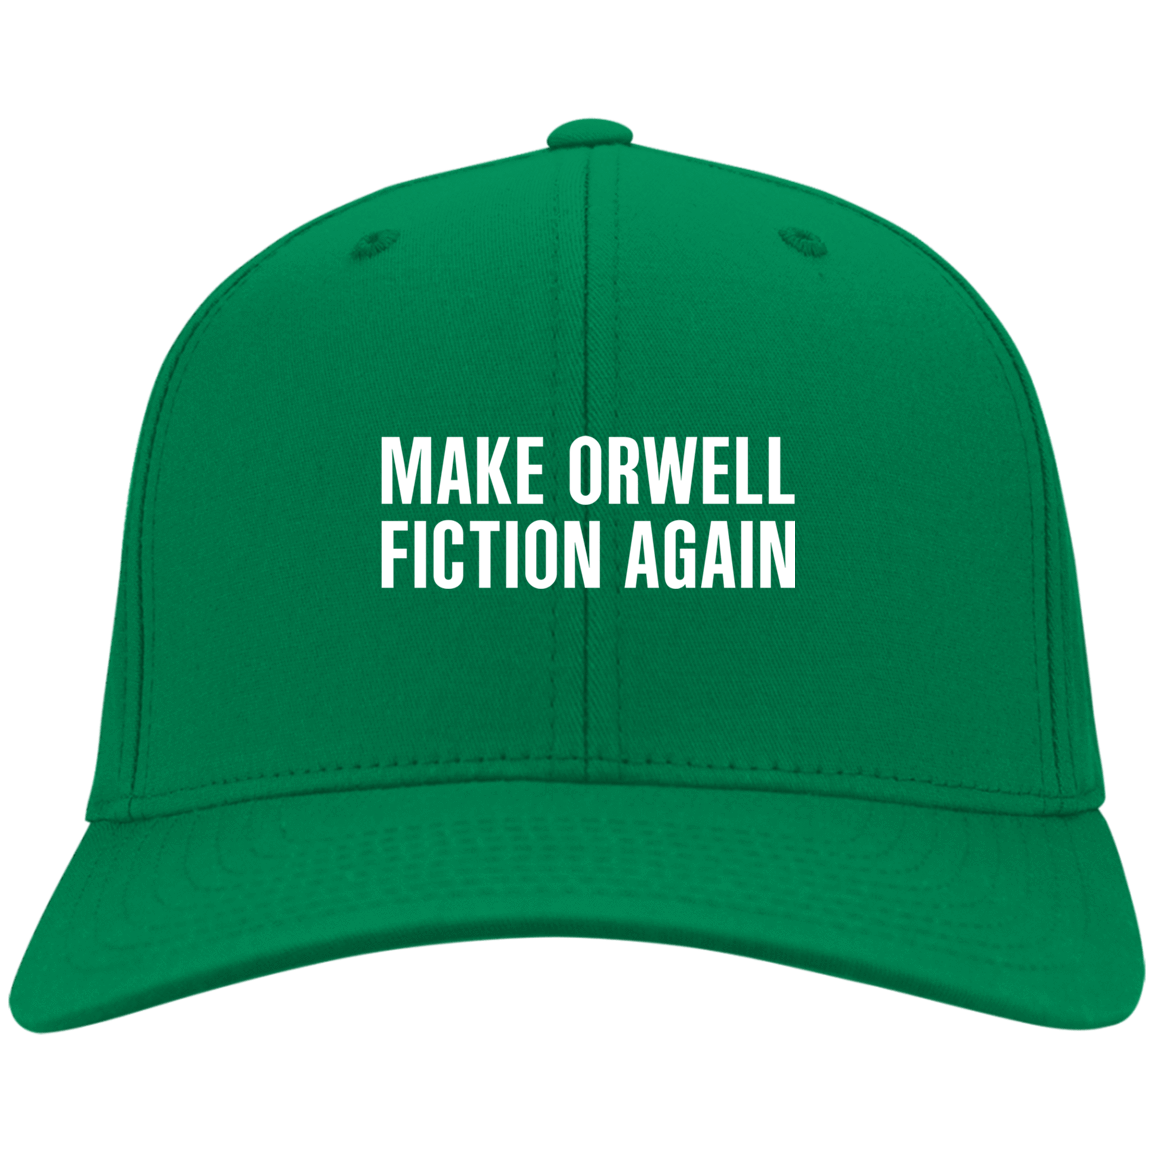 Make Orwell Fiction Again Hat 10-9384-74169573-45467 - Tee Ript